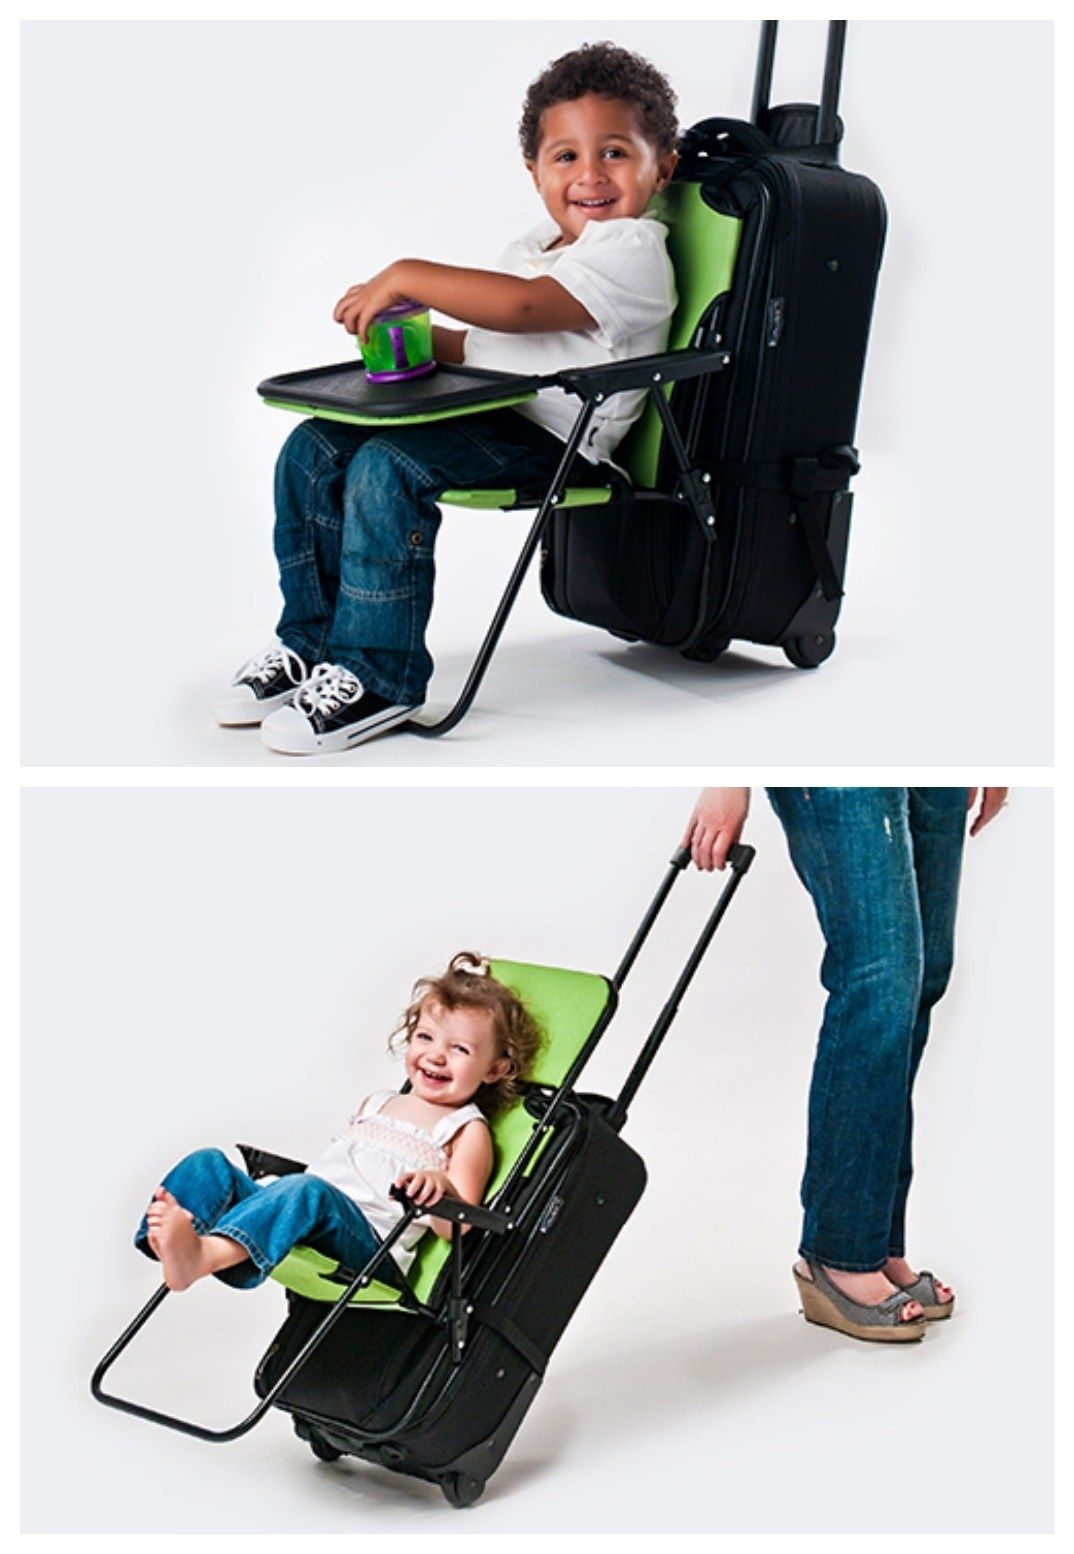 Car Seat Travel Bag With Bonus Strap That Converts Suitcase Into Rolling Stroller